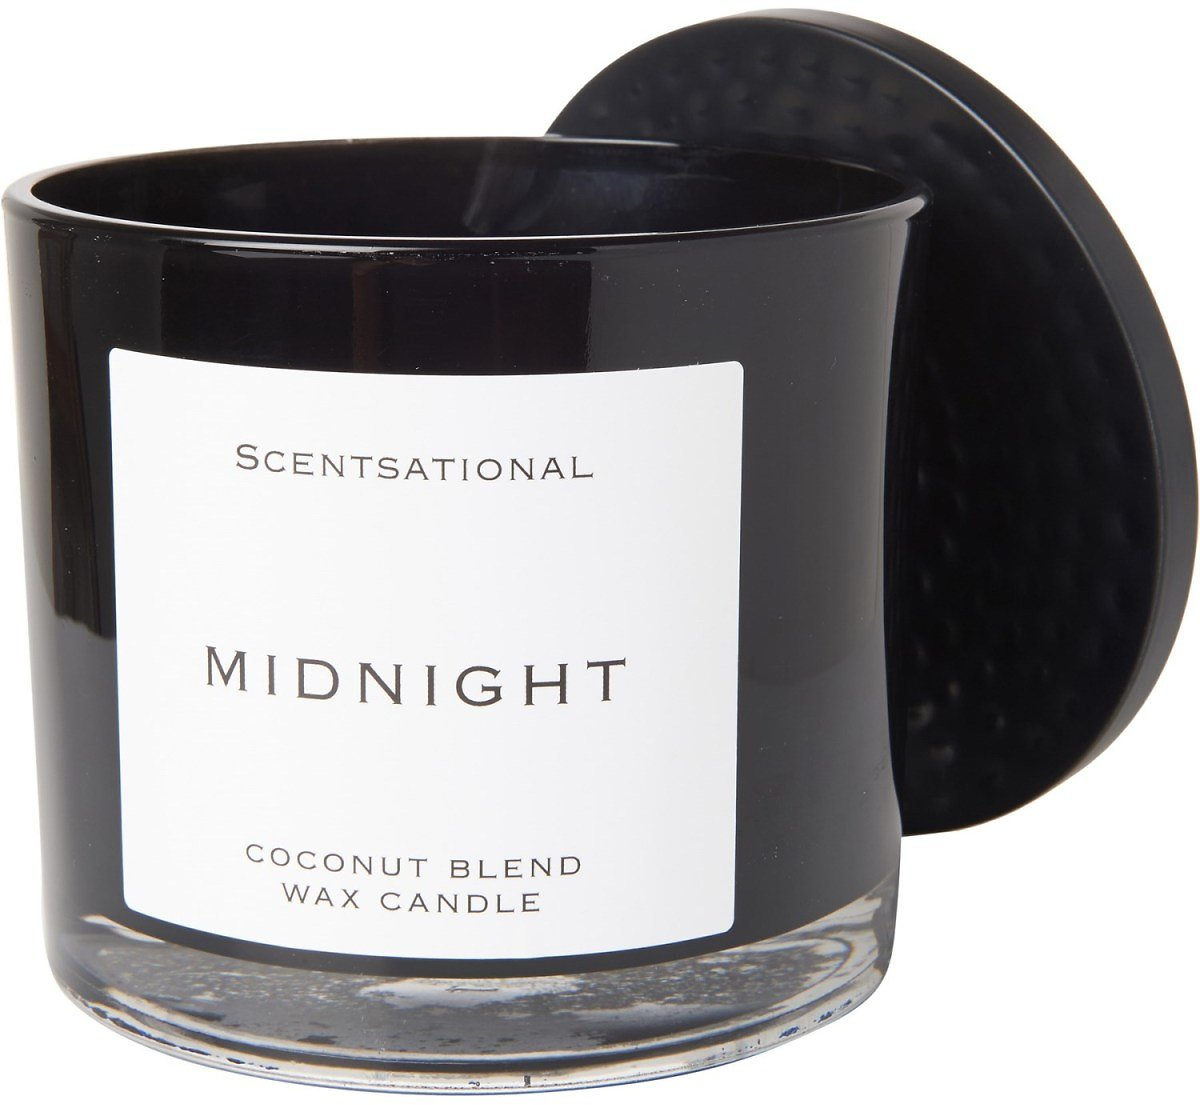 Scentsational Midnight Woods Coconut-Blend Wax Candle - 3-Wick, 26 Oz.